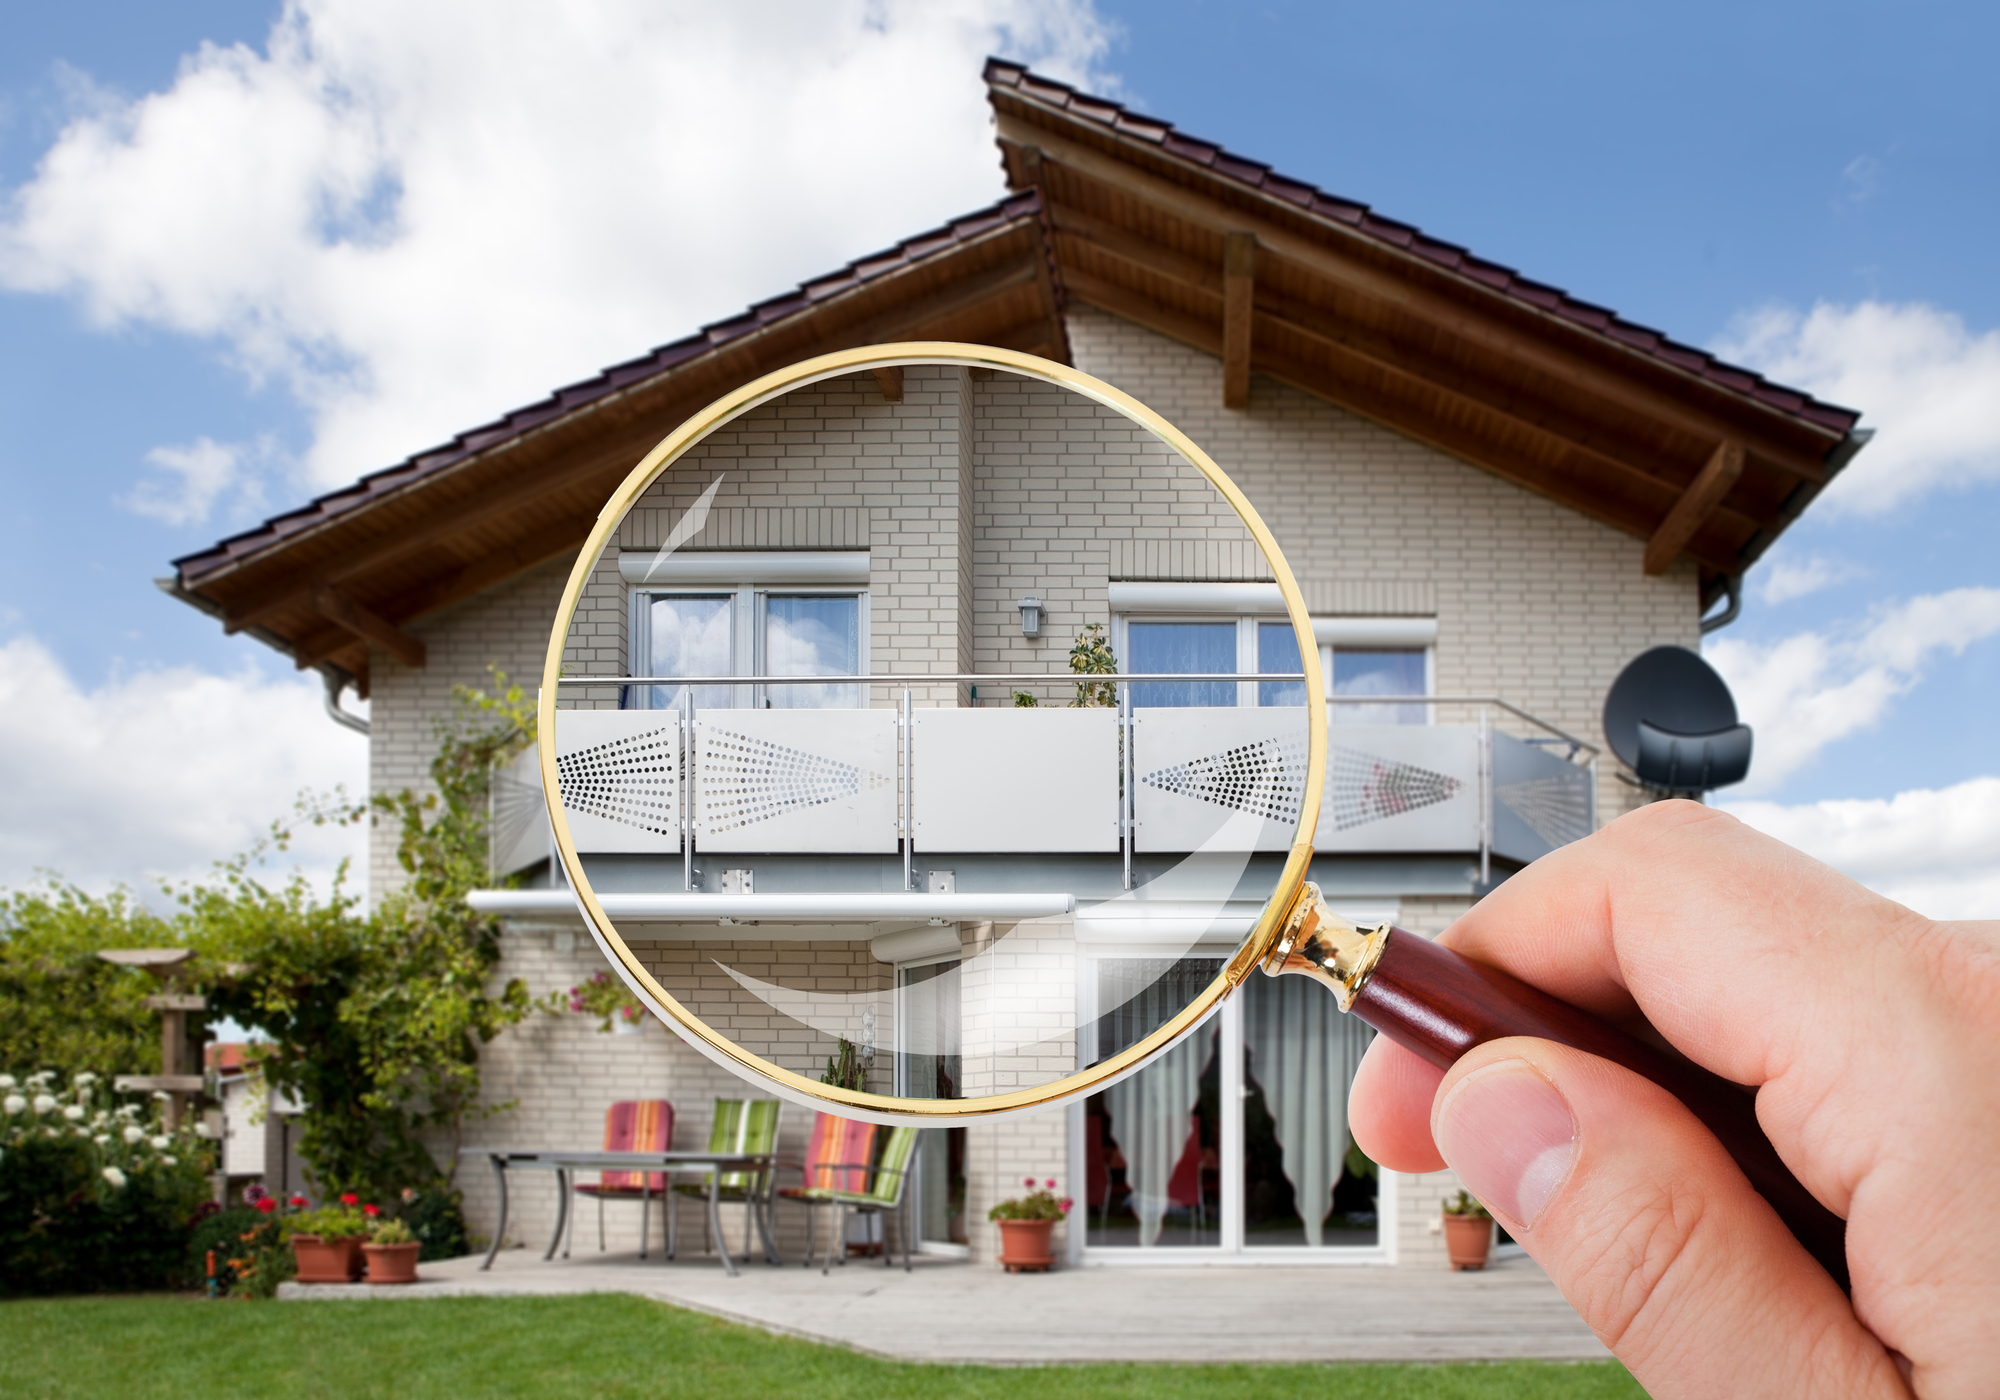 Hand With Magnifying Glass Regular Property Inspections